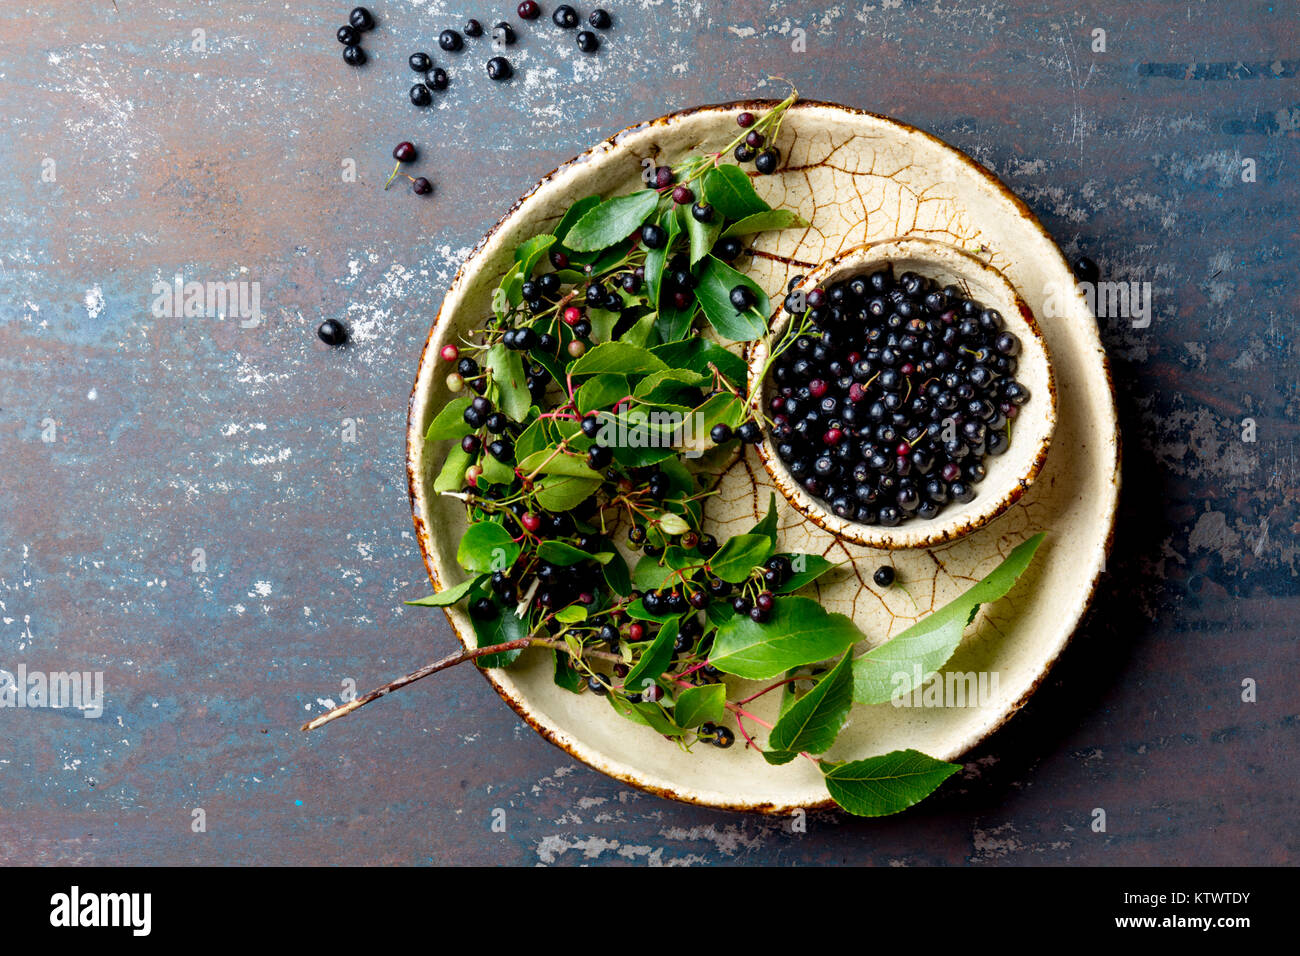 Indian Berry High Resolution Stock Photography And Images Alamy